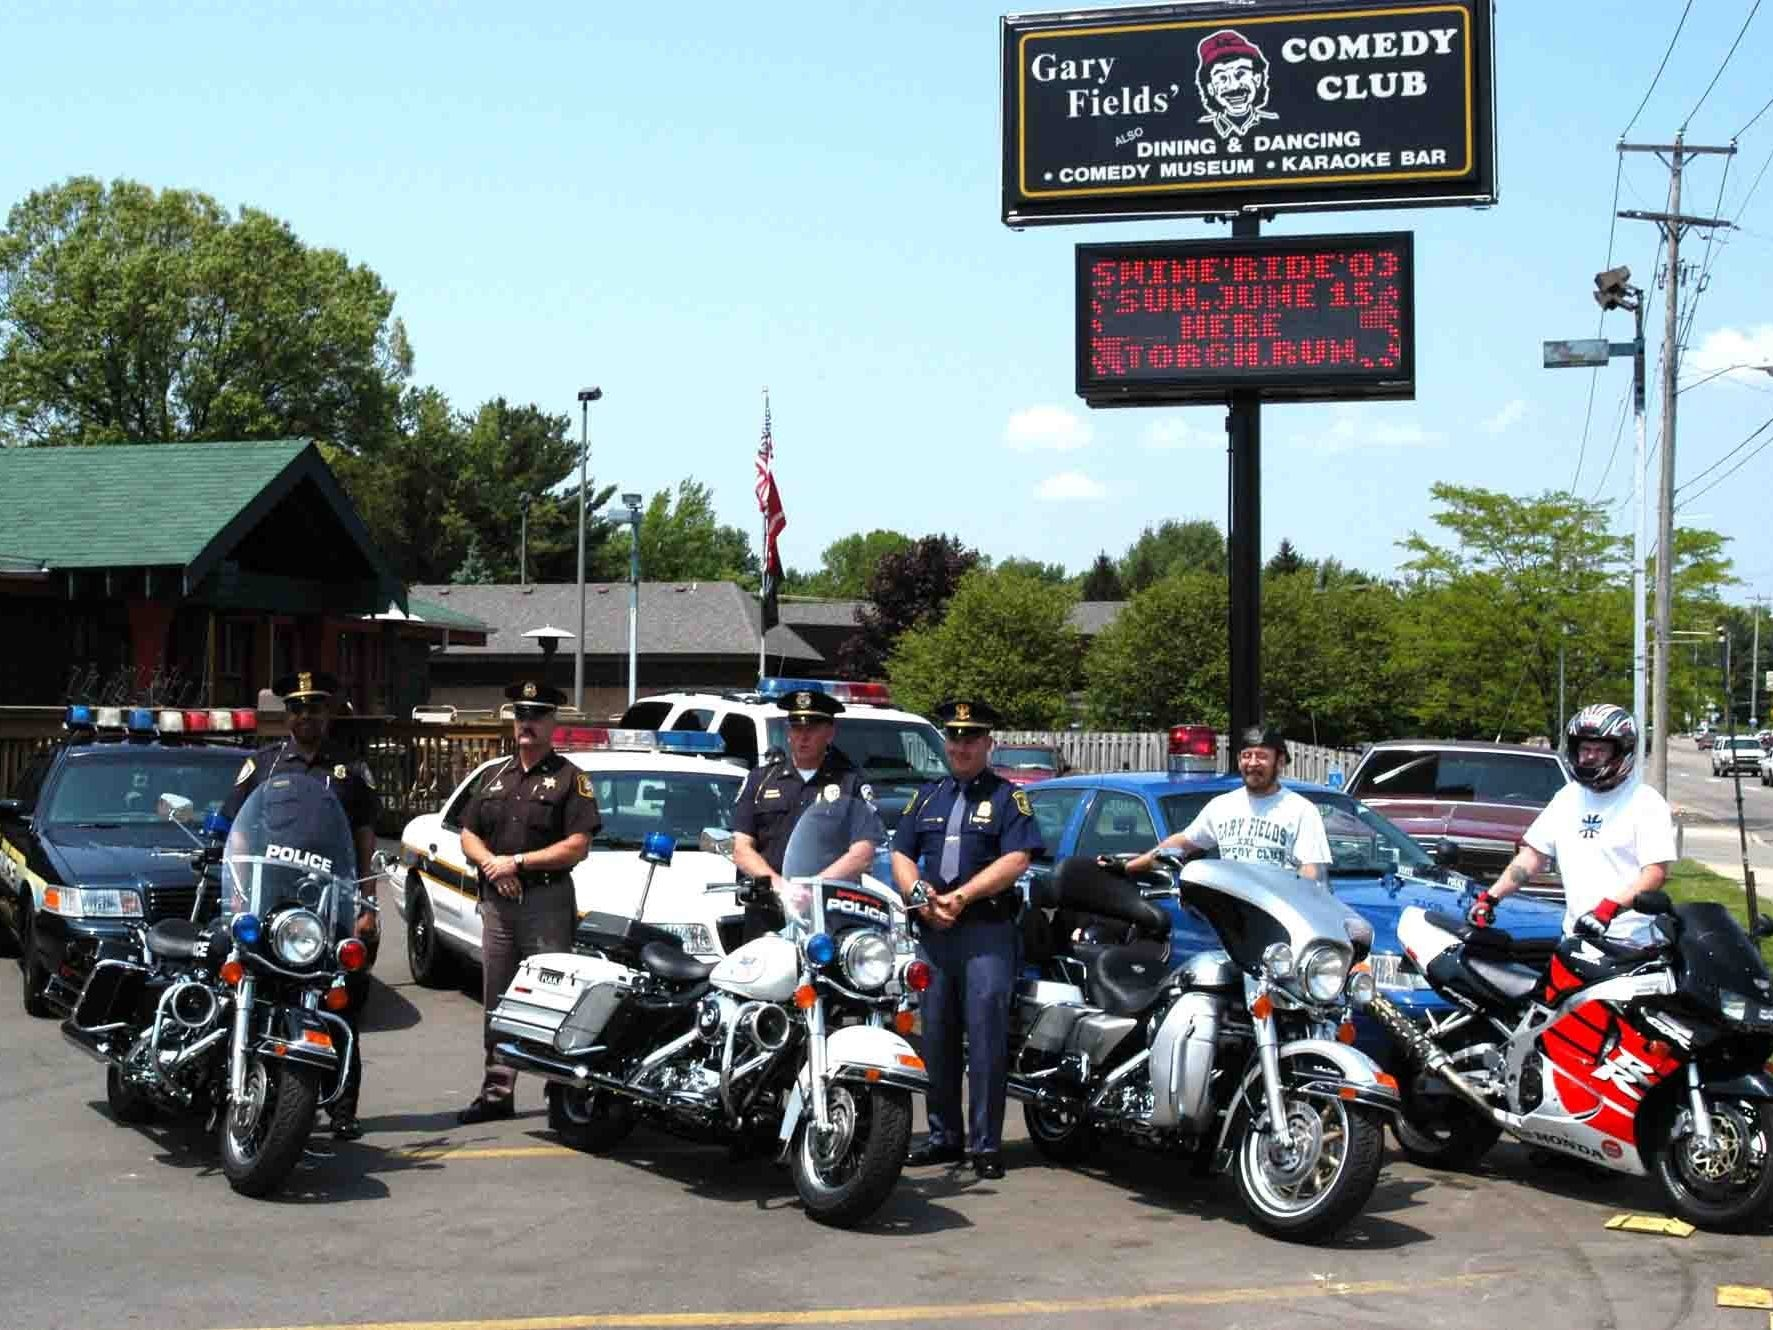 In this 2003 photo, members of the Battle Creek Police, Calhoun County Sherriff Department, Springfield Department of Public Safety and the Michigan State Police pose in the parking lot of Gary Fields' Comedy Club on Capital Avenue. The club was popular for its bike nights and support for local law enforcement.